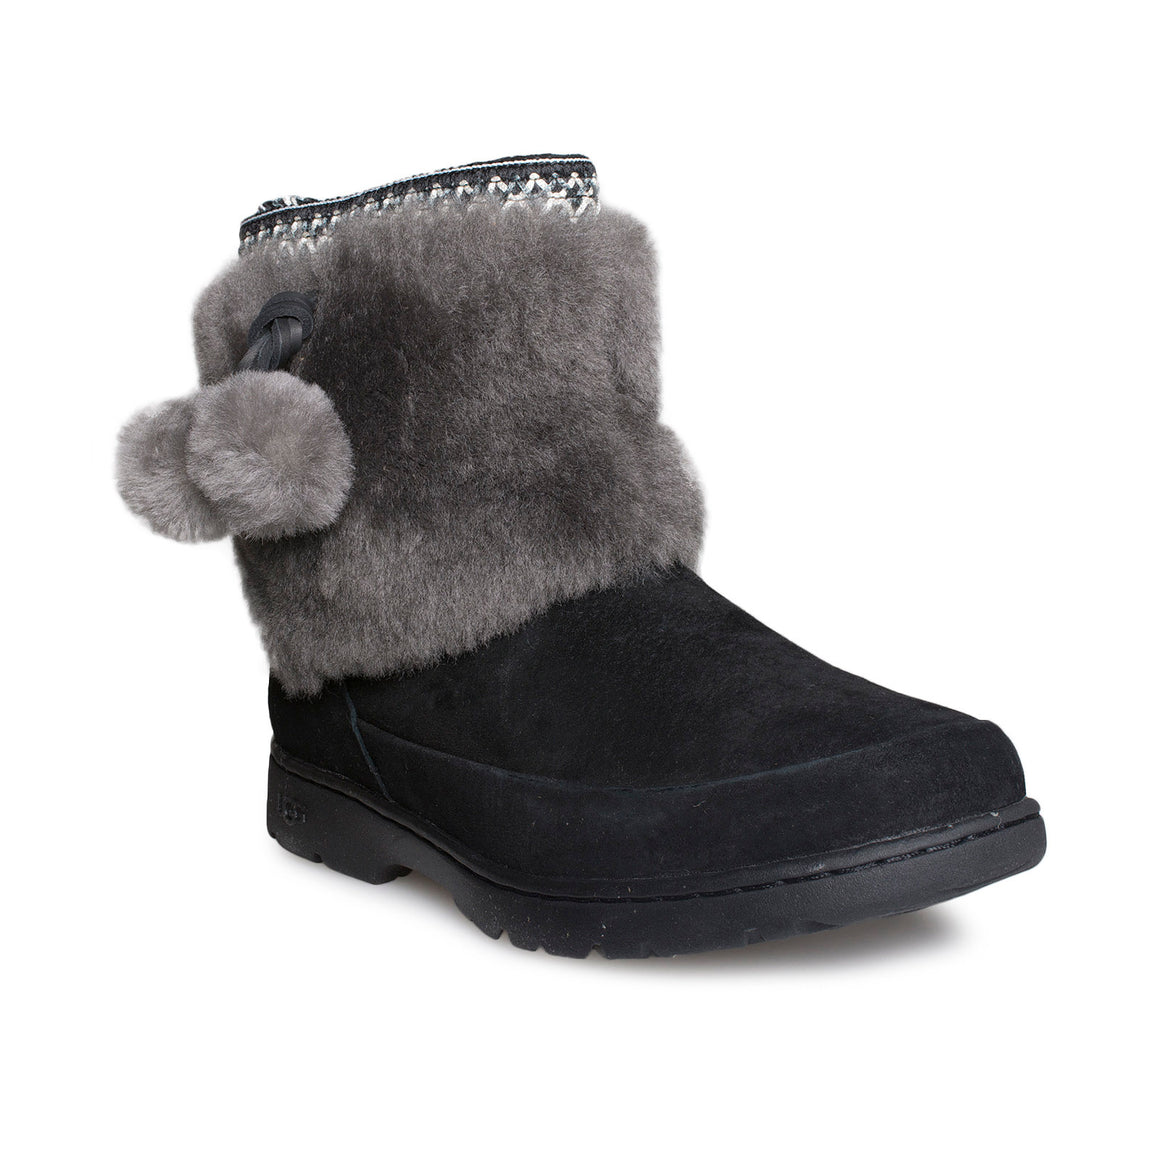 UGG Brie Black Boots - Women's